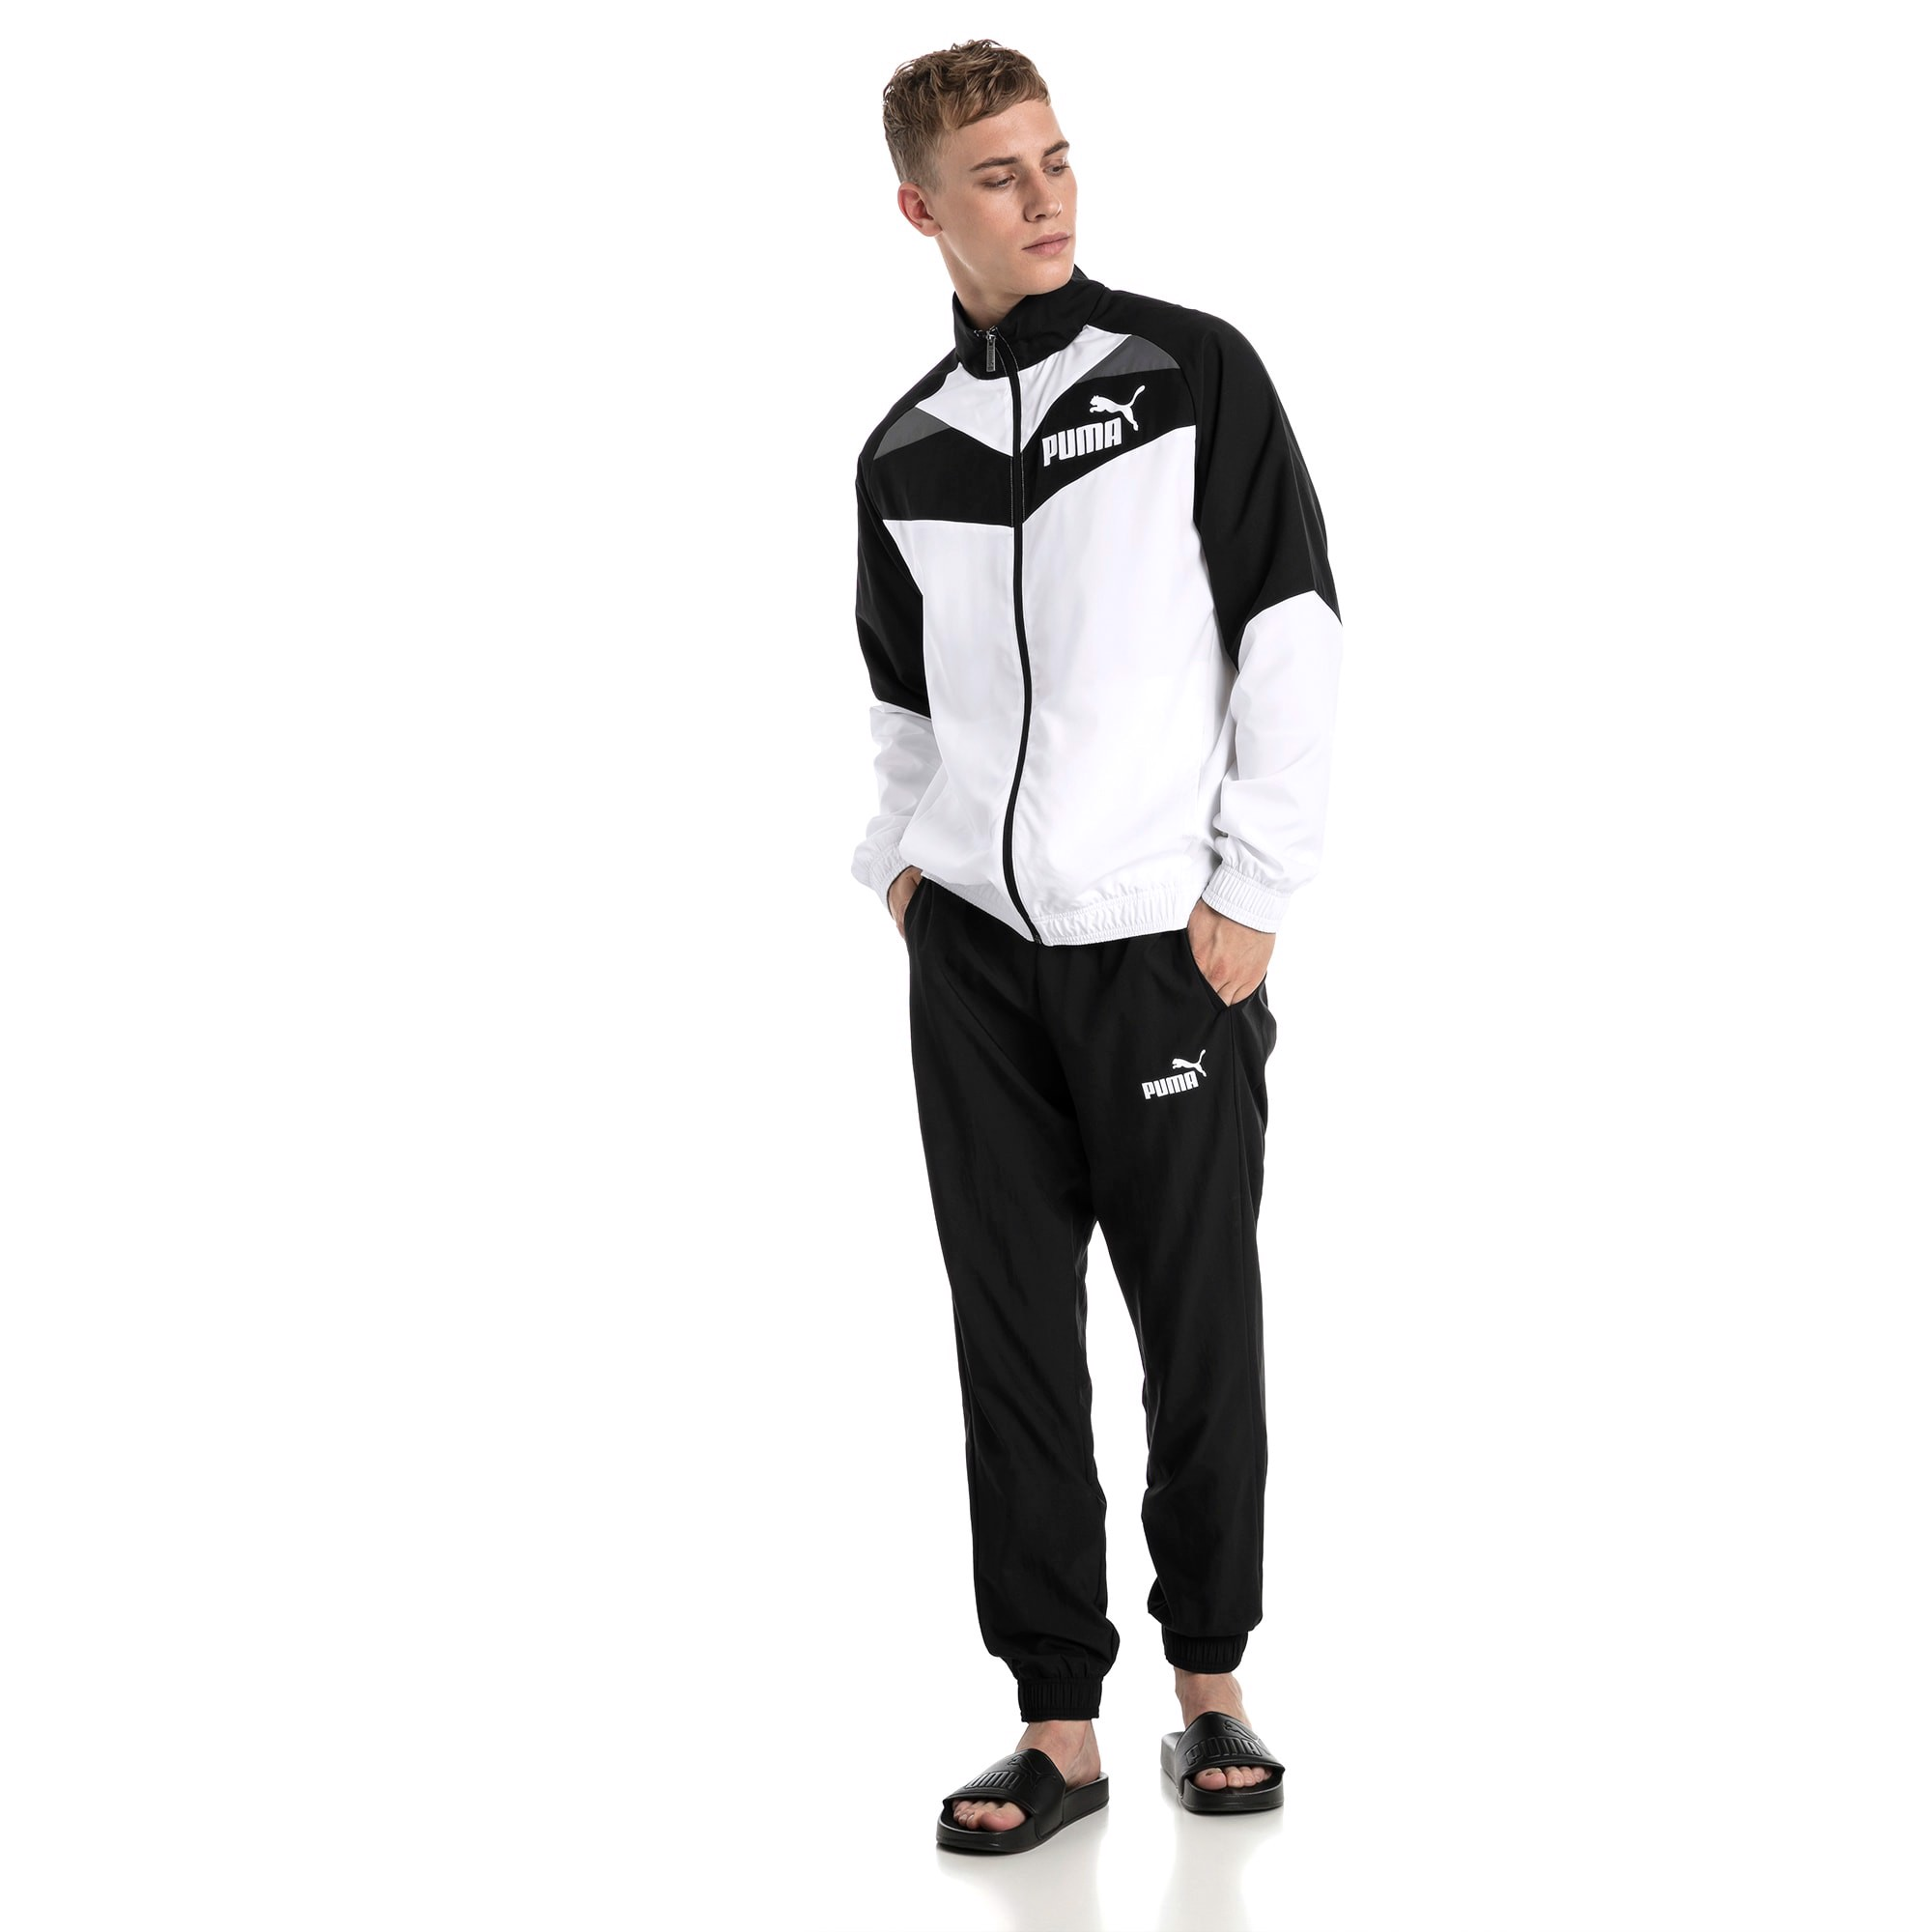 Puma Men's Iconic Woven Track Suit 851564-01